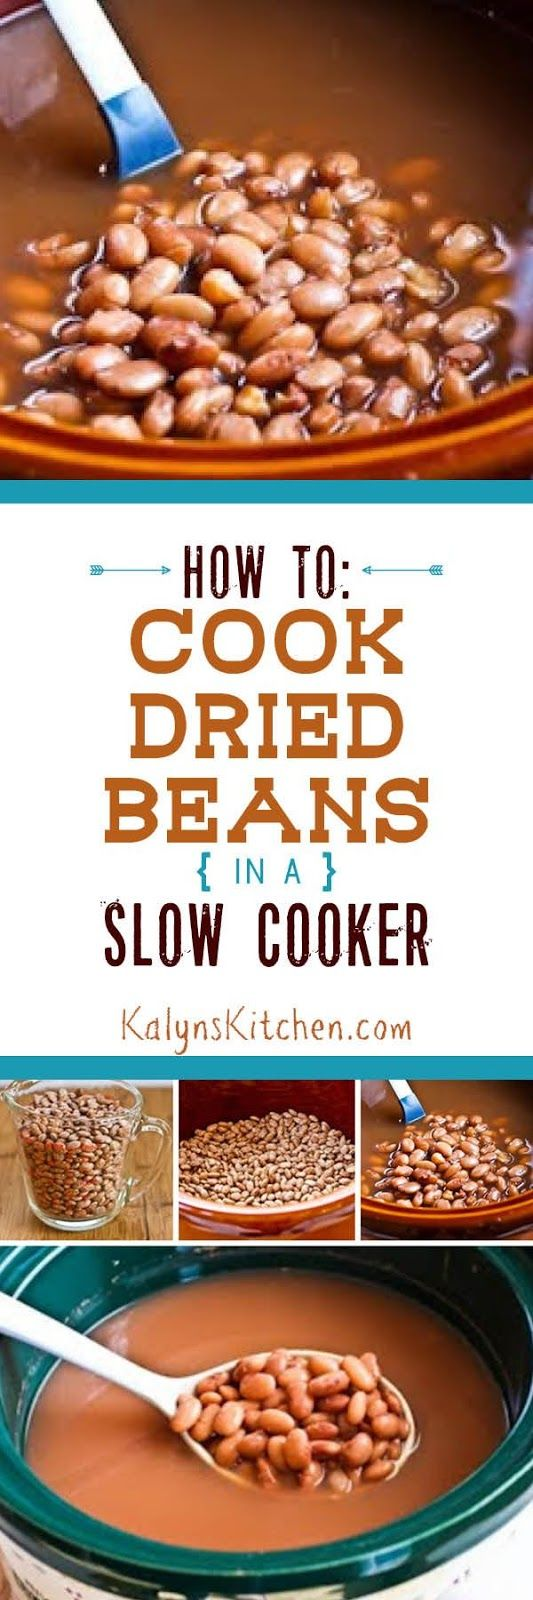 This popular post on How to Cook Dried Beans in a Crockpot Slow Cooker compares results using soaked or unsoaked beans and has other tips for slow cooker beans. And dried beans cooked in a slow cooker are better tasting, more nutritous, and less expensive than canned beans, so everyone should be doing this!  [found on KalynsKitchen.com] # SlowCookerBeans #SlowCookerDriedBeans #HowToCookBeansSlowCooker